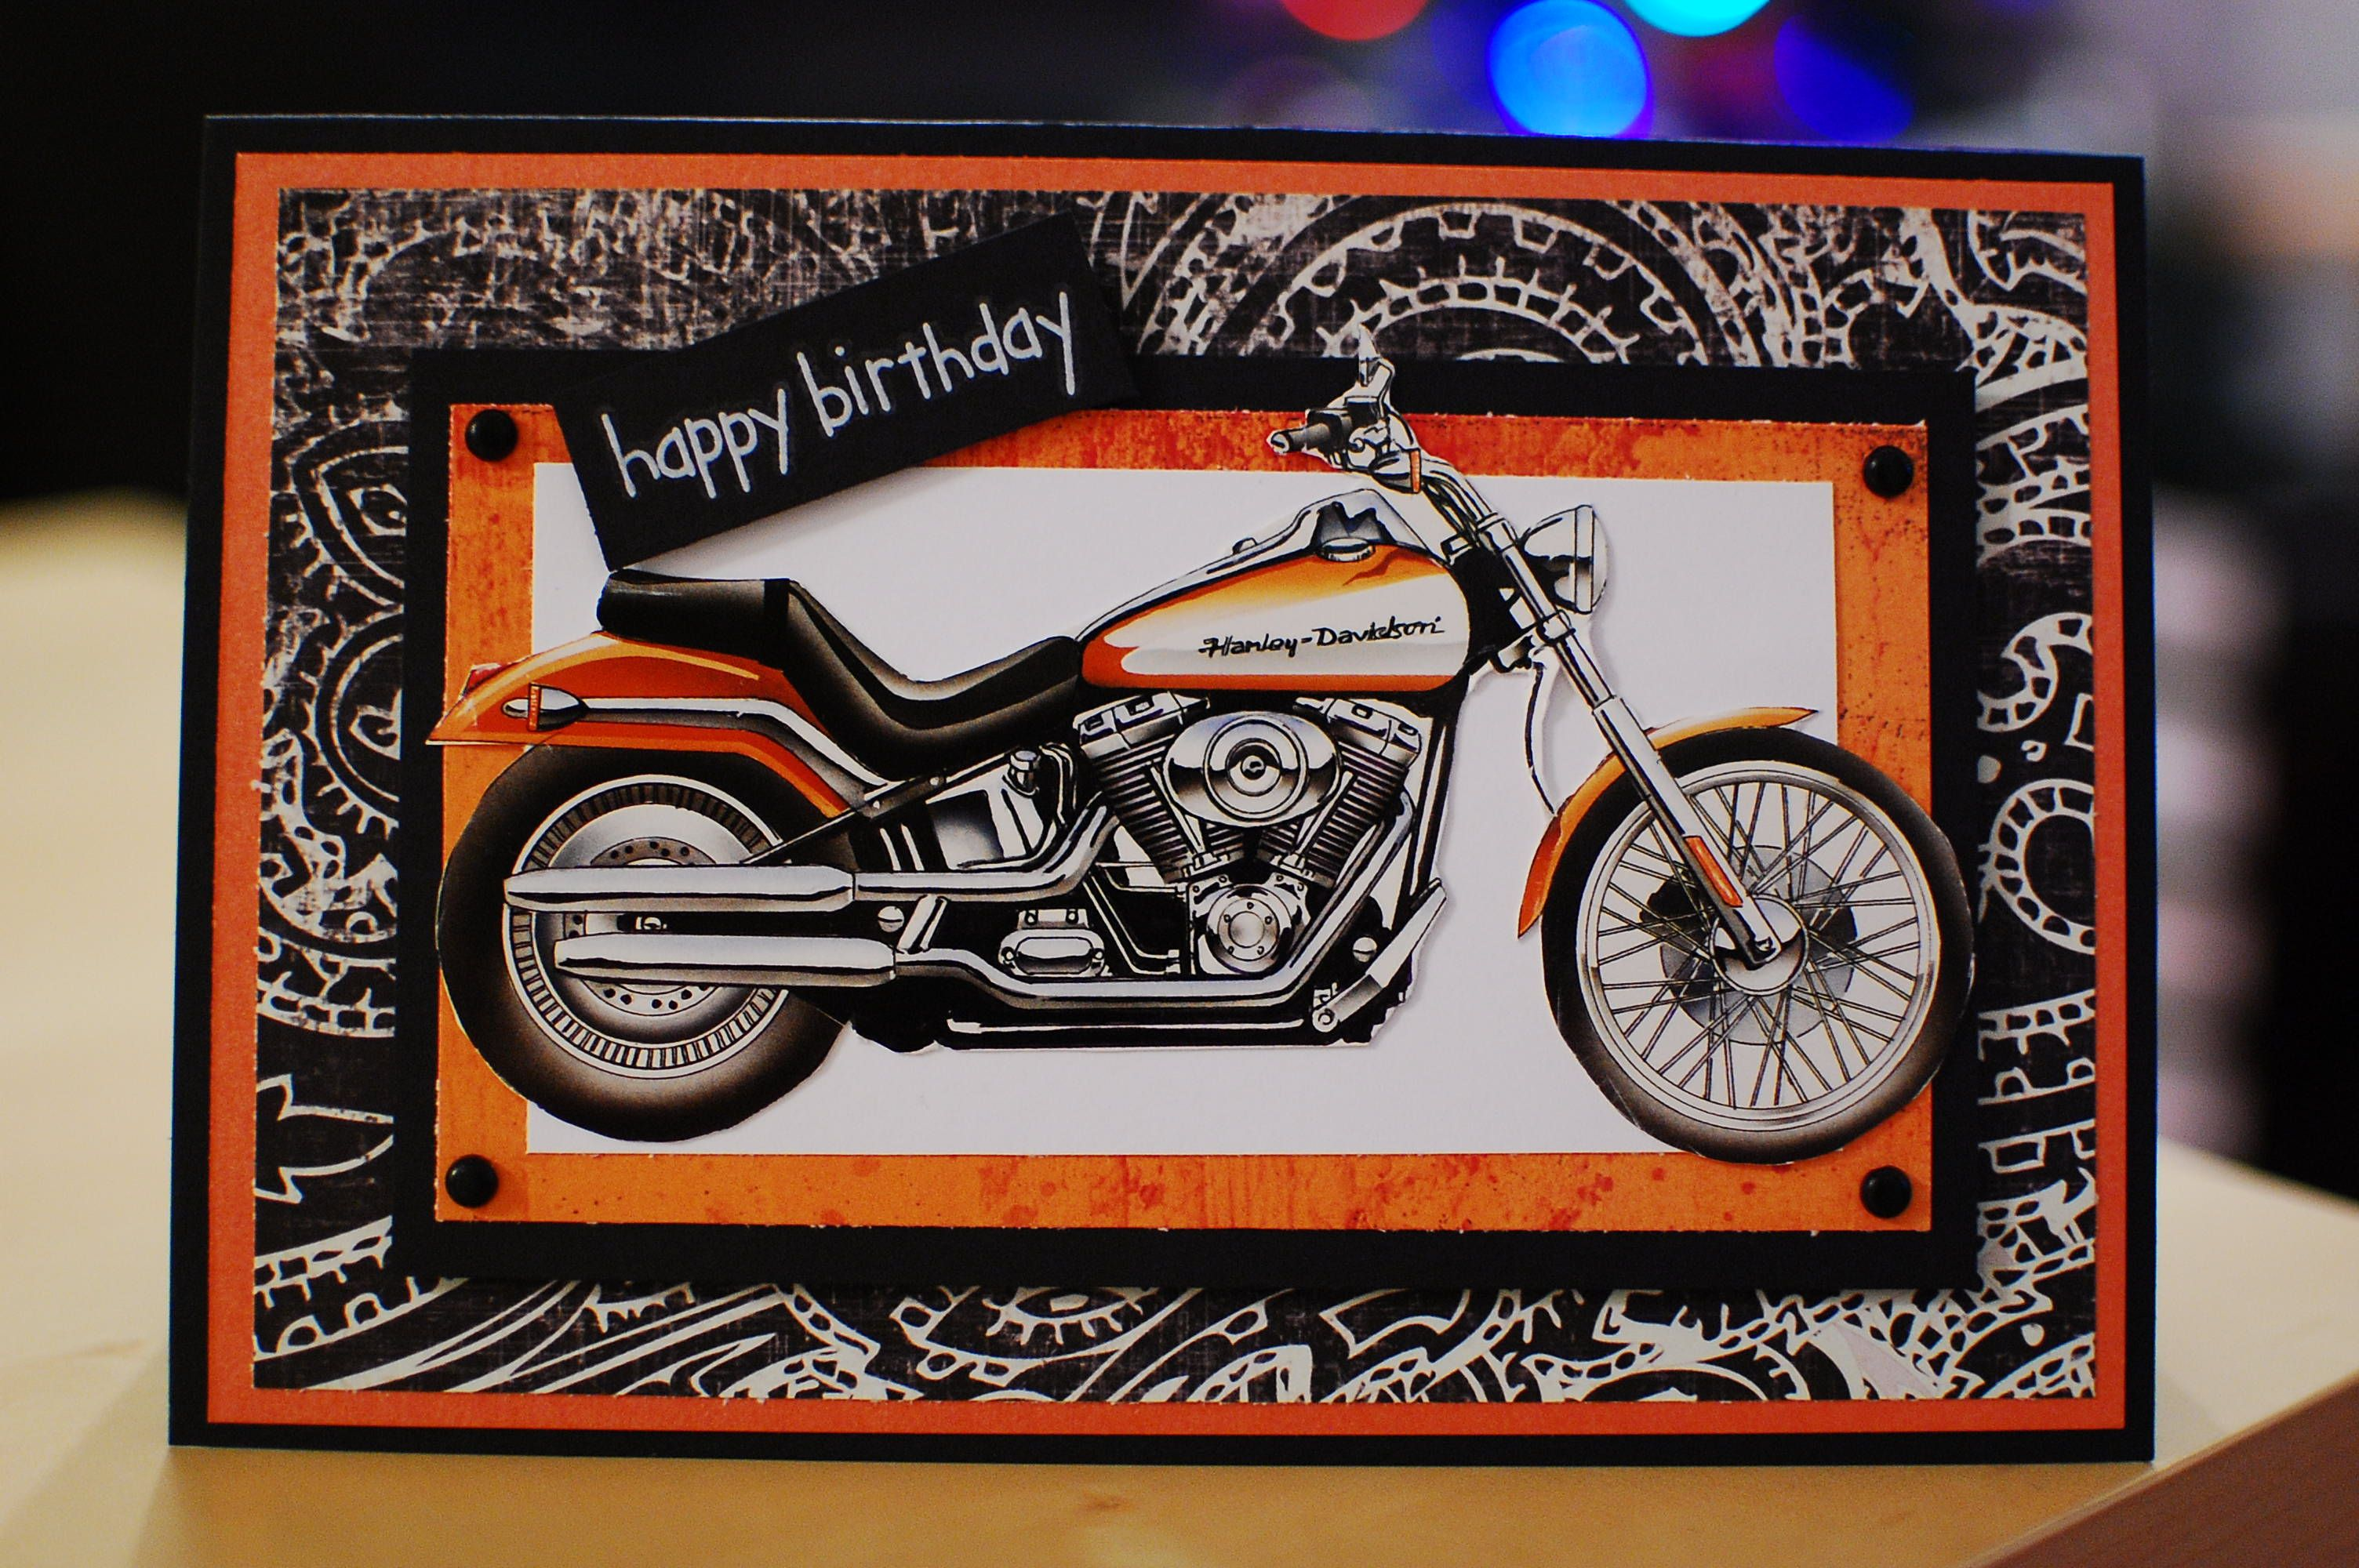 Motorcycle Party Invitations was nice invitations design